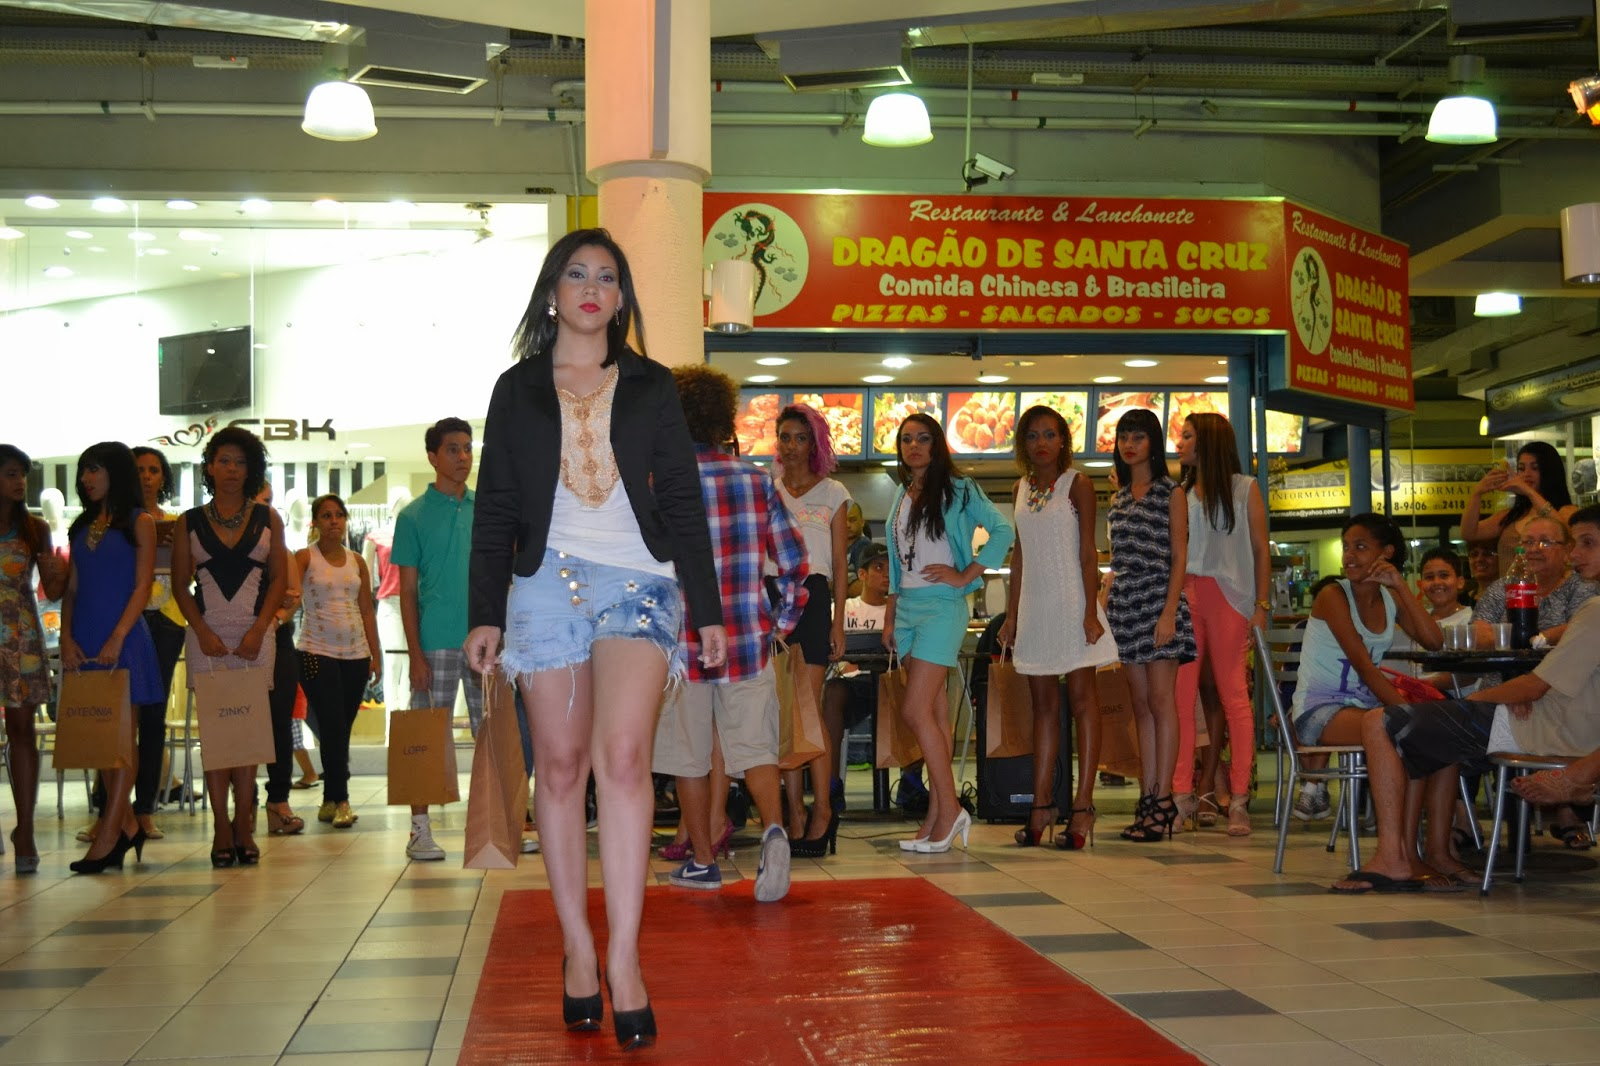 Semana da Moda do Santa Cruz Shopping agita Santa Cruz